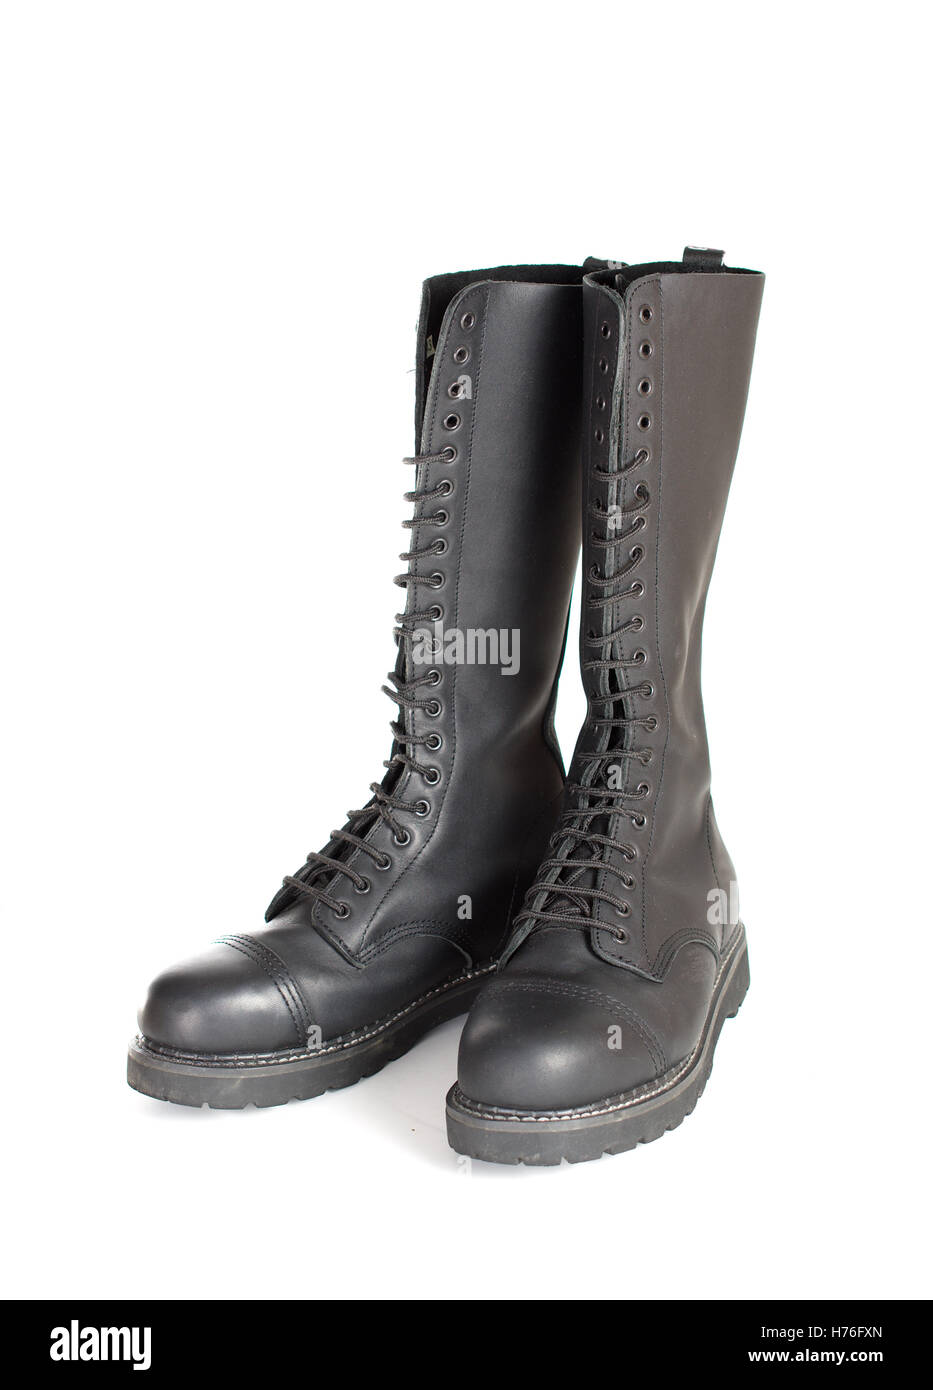 514fea9099d0 New tall lace-up knee-high black leather boots featuring 20 eyelets and  steel-toes. Fashion combat work boots worn by both men